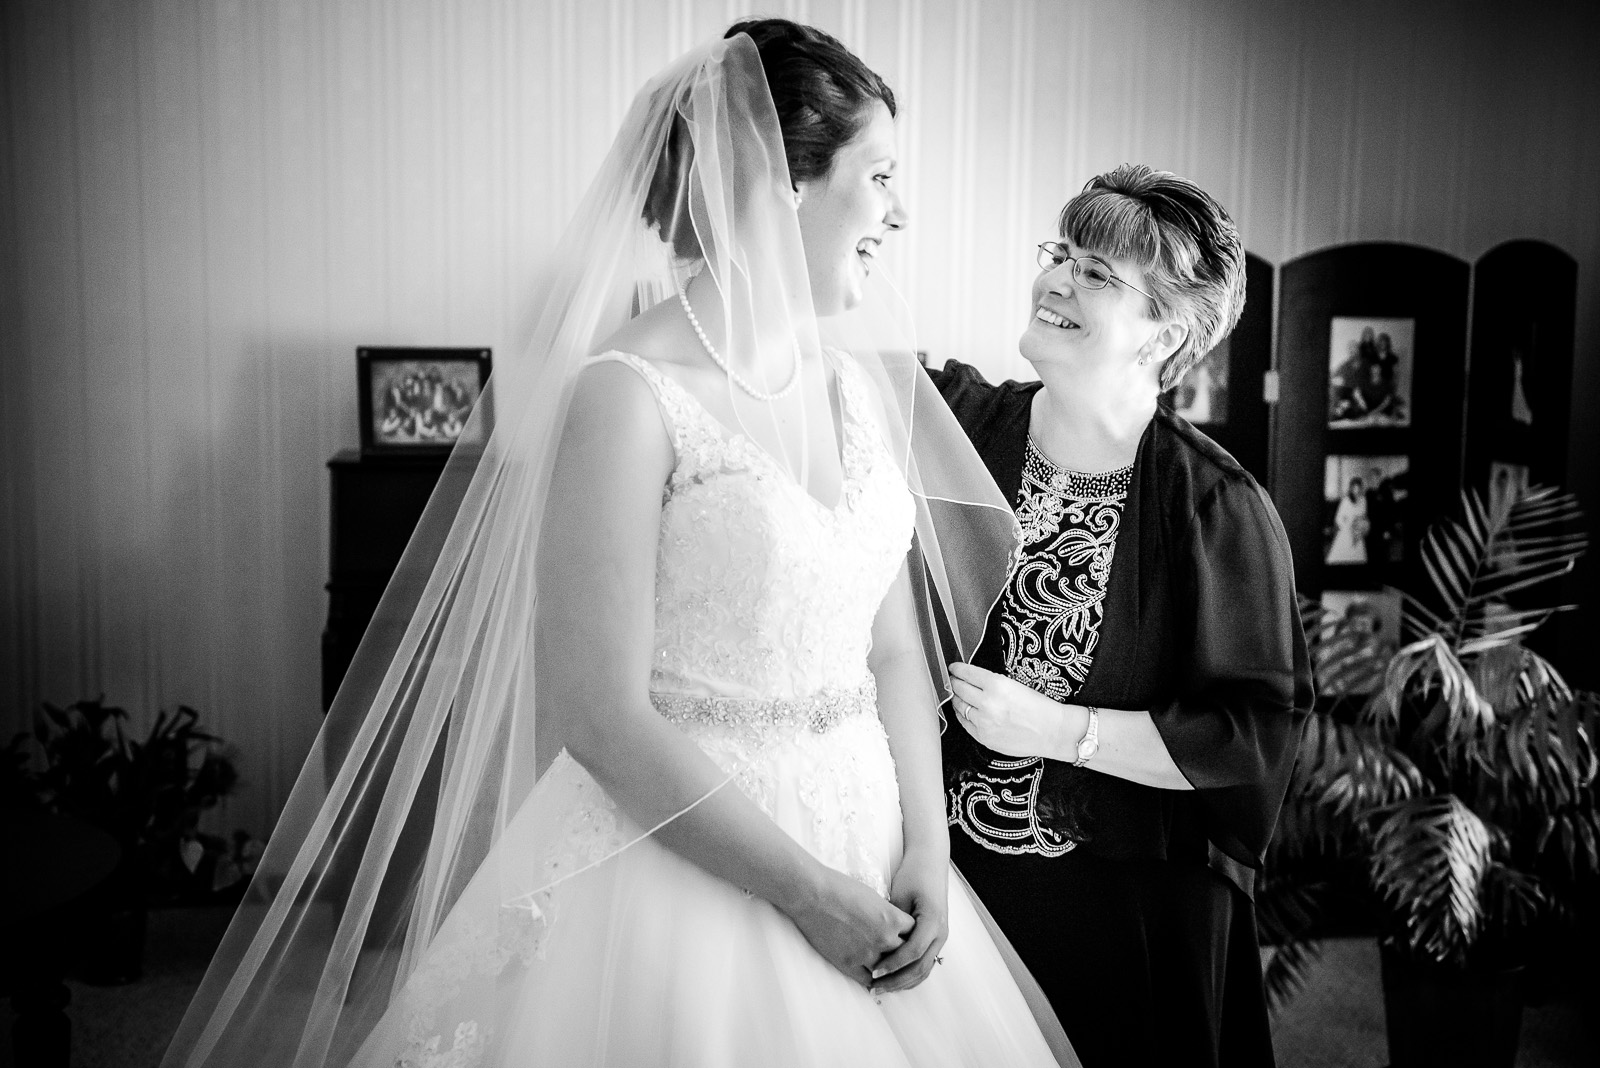 Eric_and_Christy_Photography_Blog_Wedding_Kelly_Michael-2